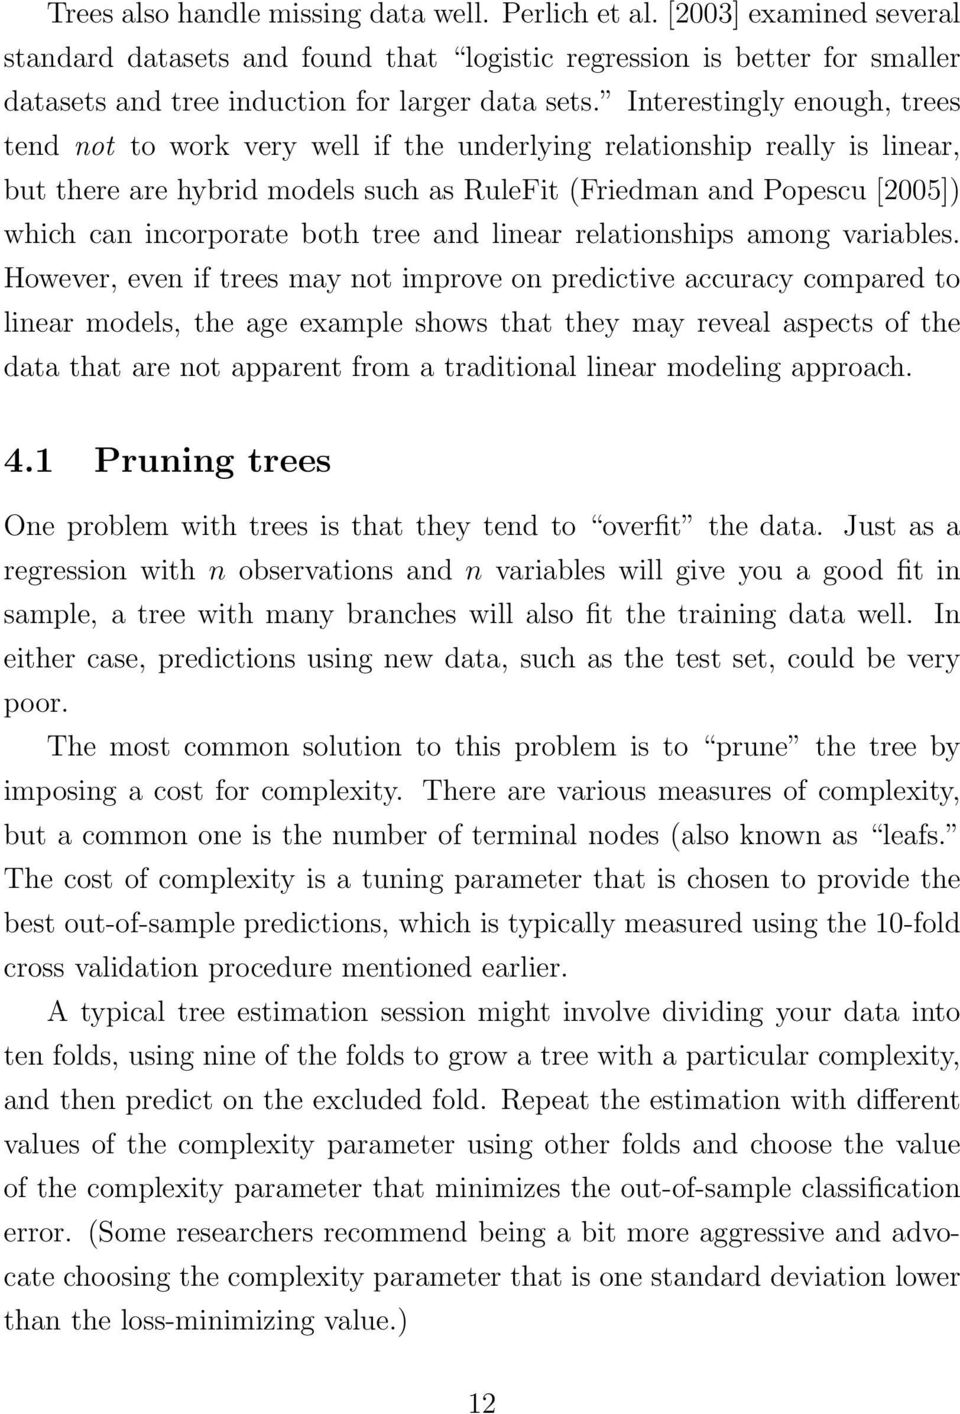 both tree and linear relationships among variables.